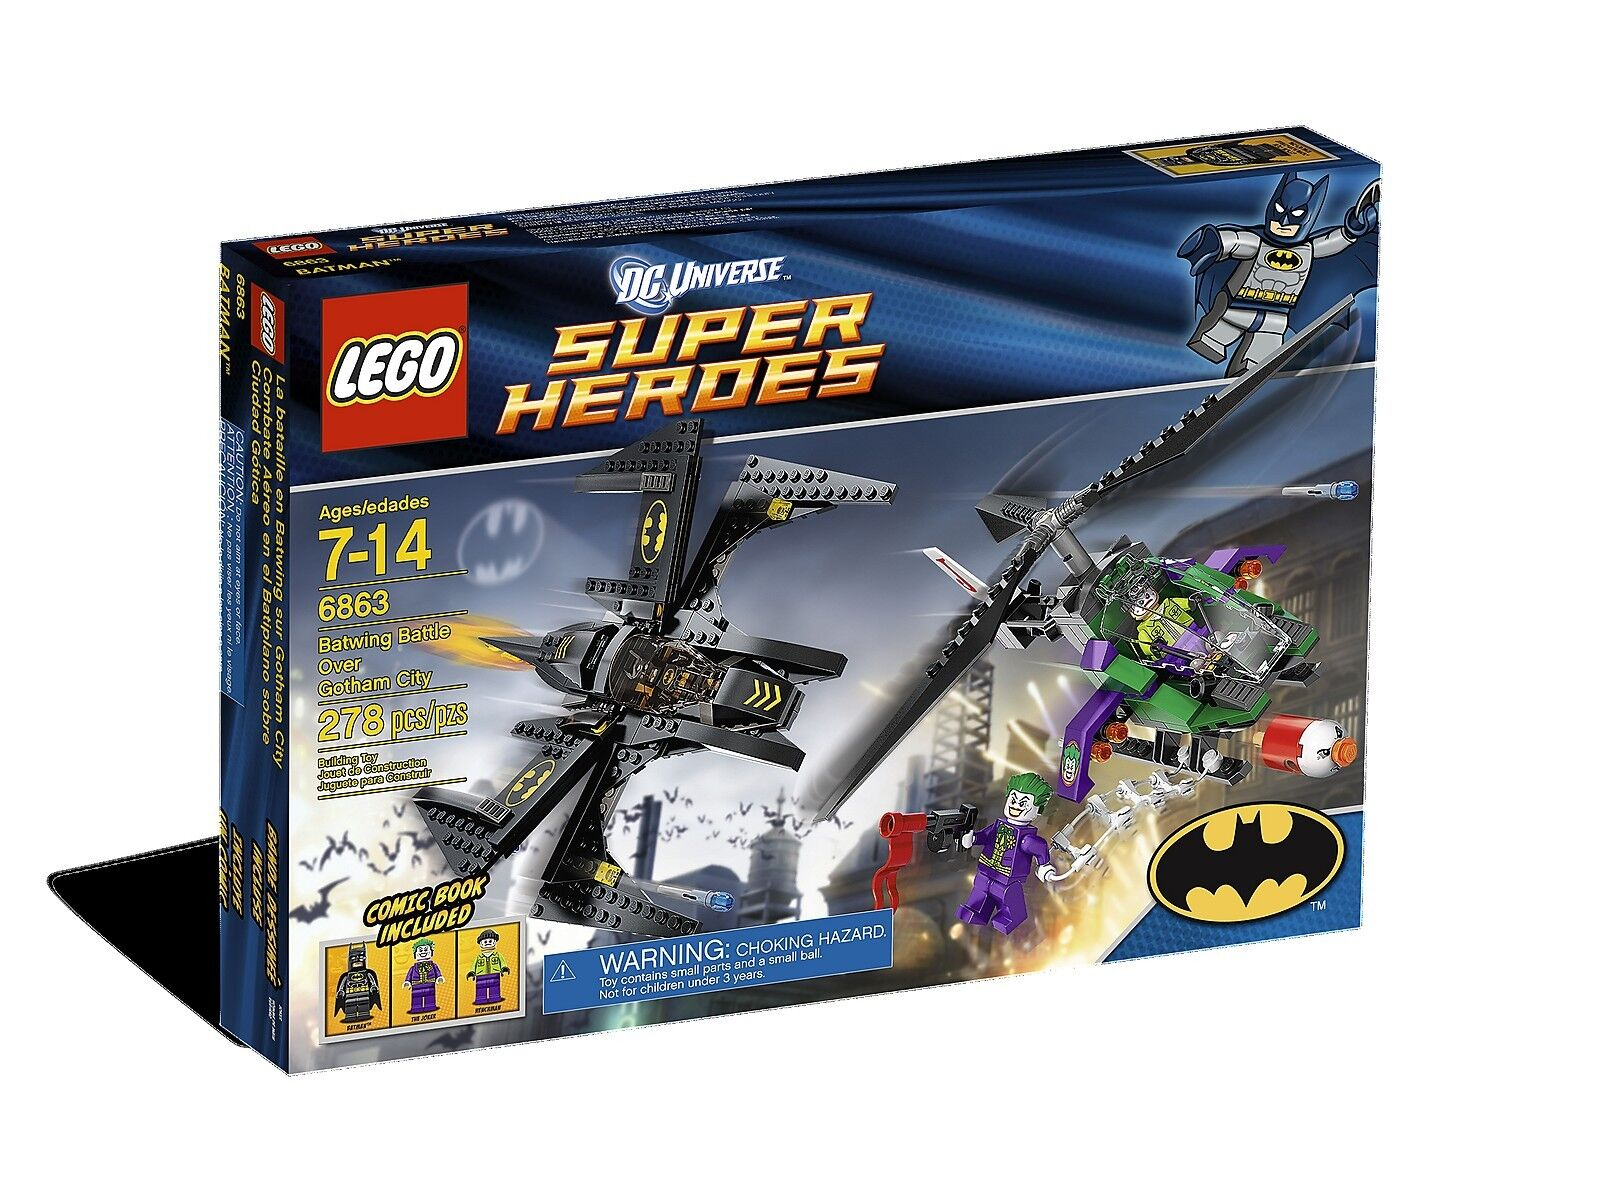 Lego DC Super Heroes 6863 Batman BATWING BATTLE OVER GOTHAM CITY XMAS Present